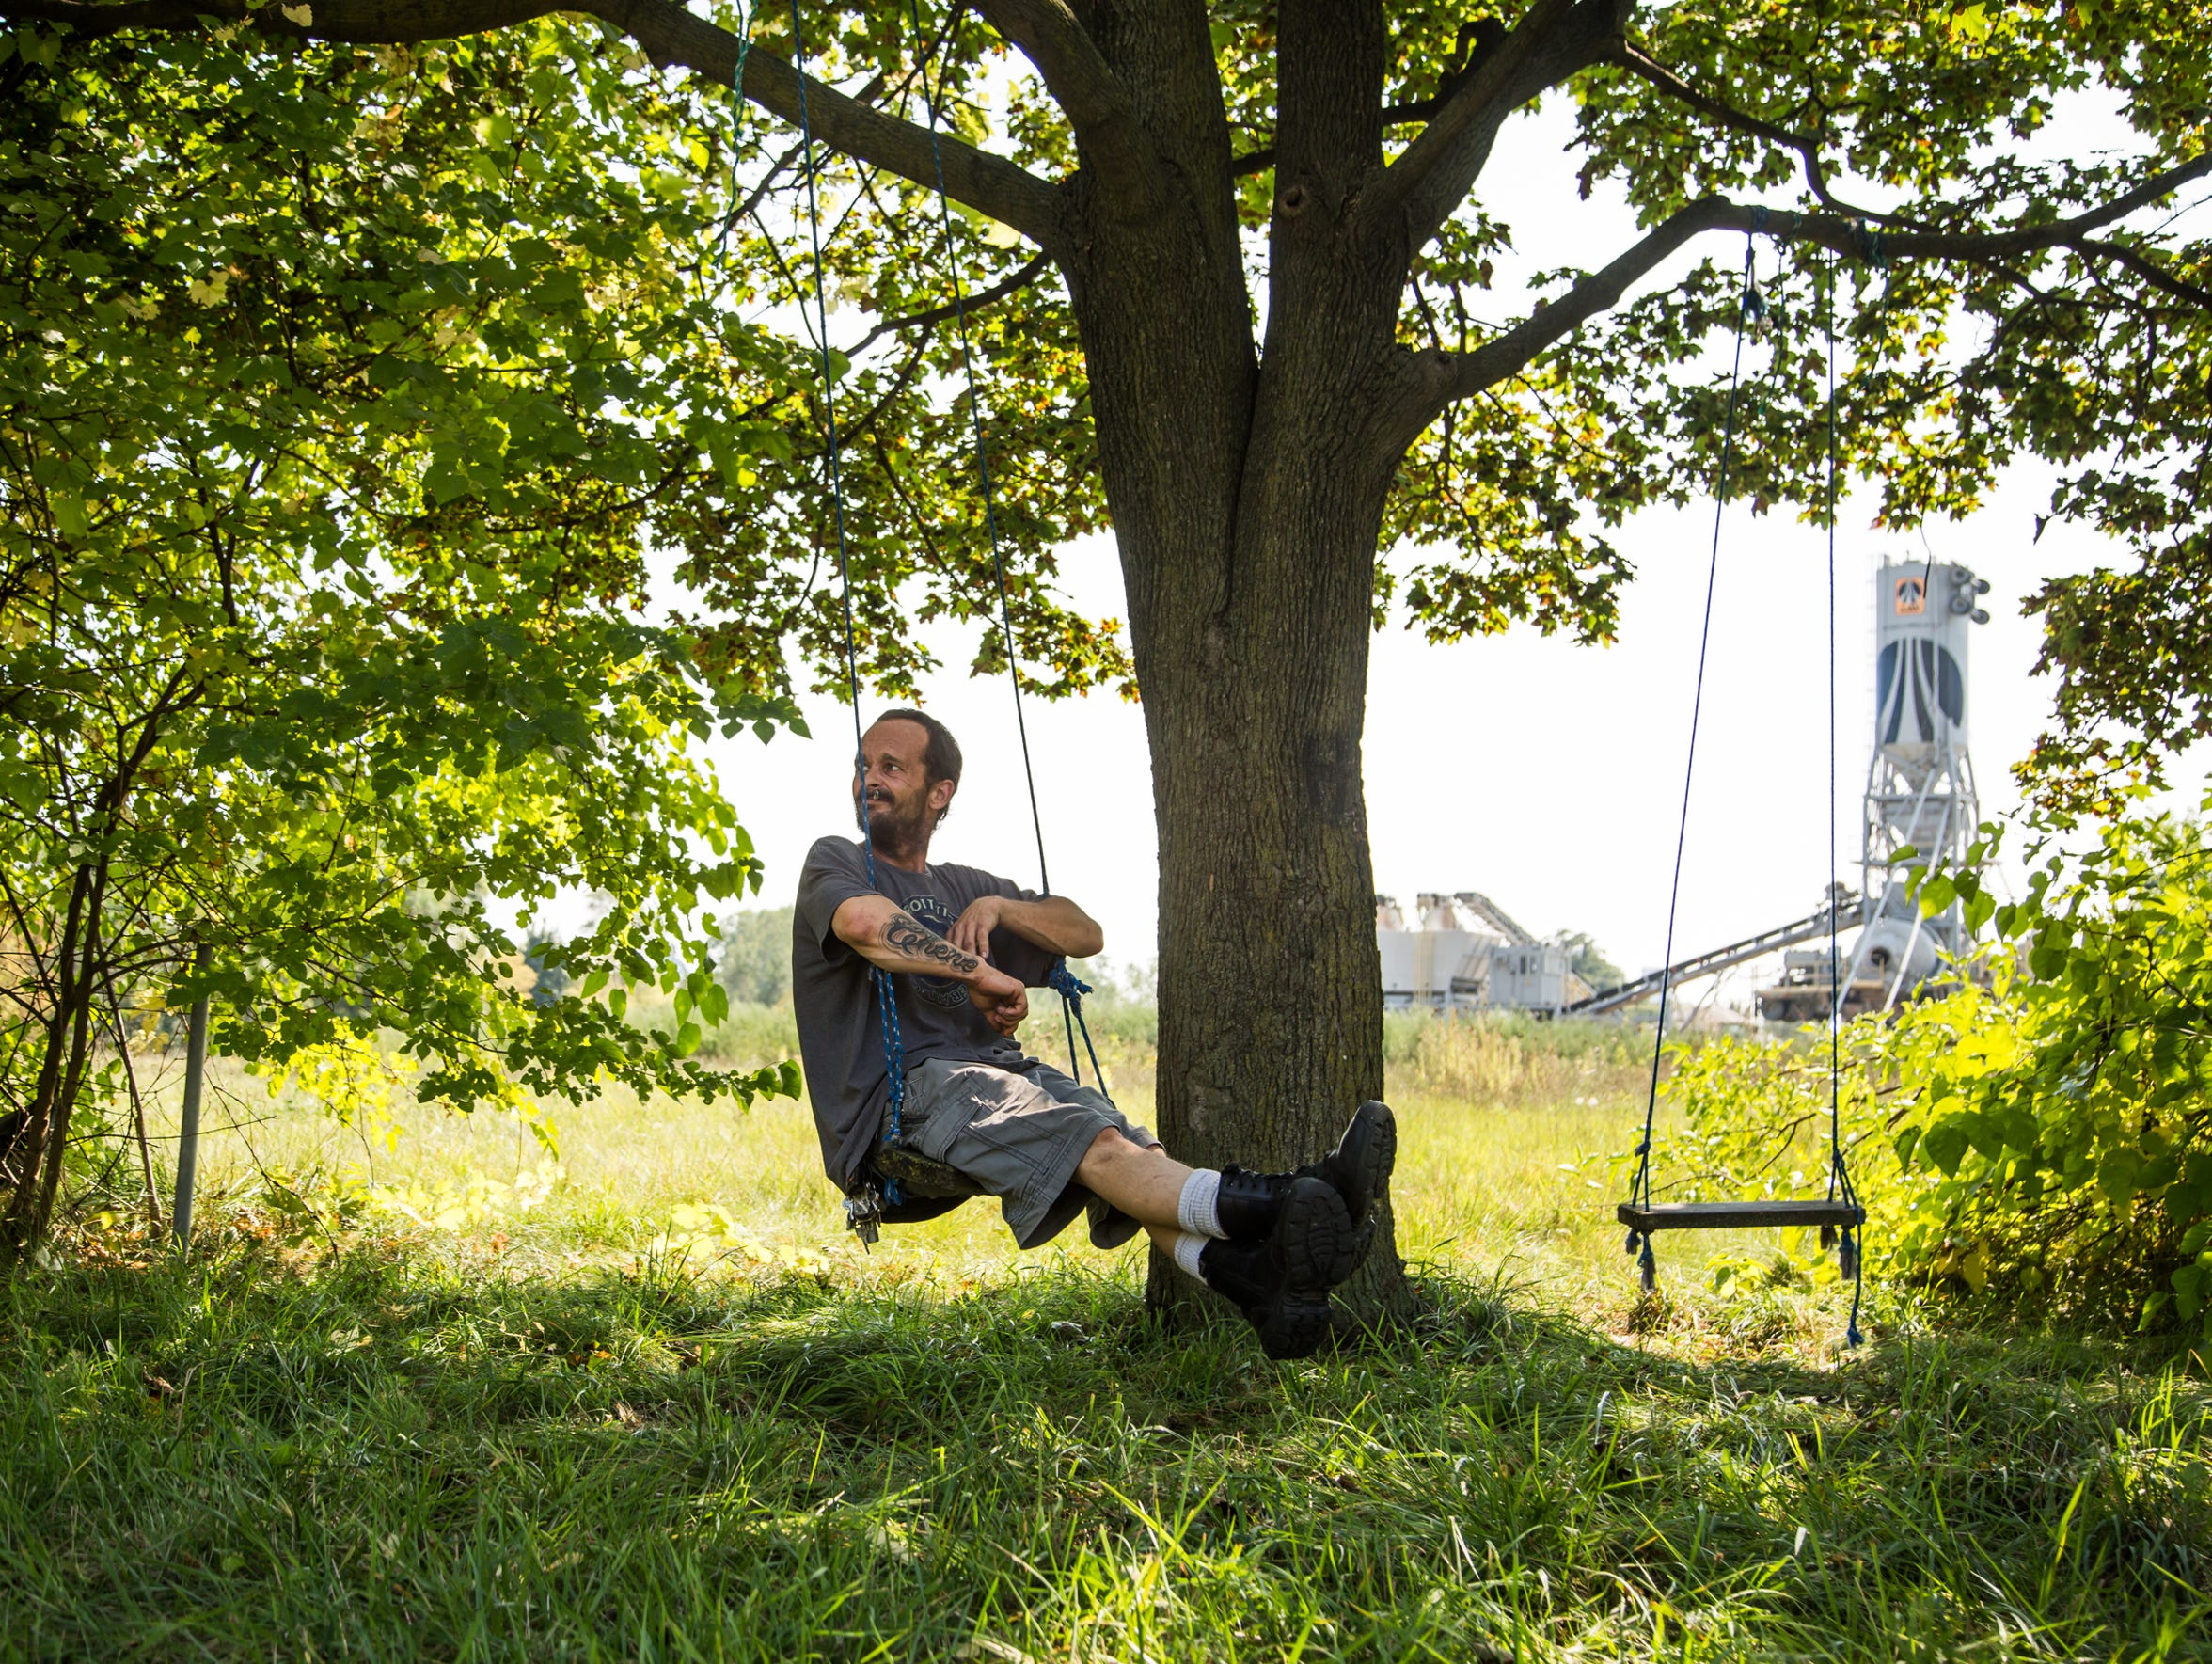 George Chene, 39, of Detroit sits on a swing he found